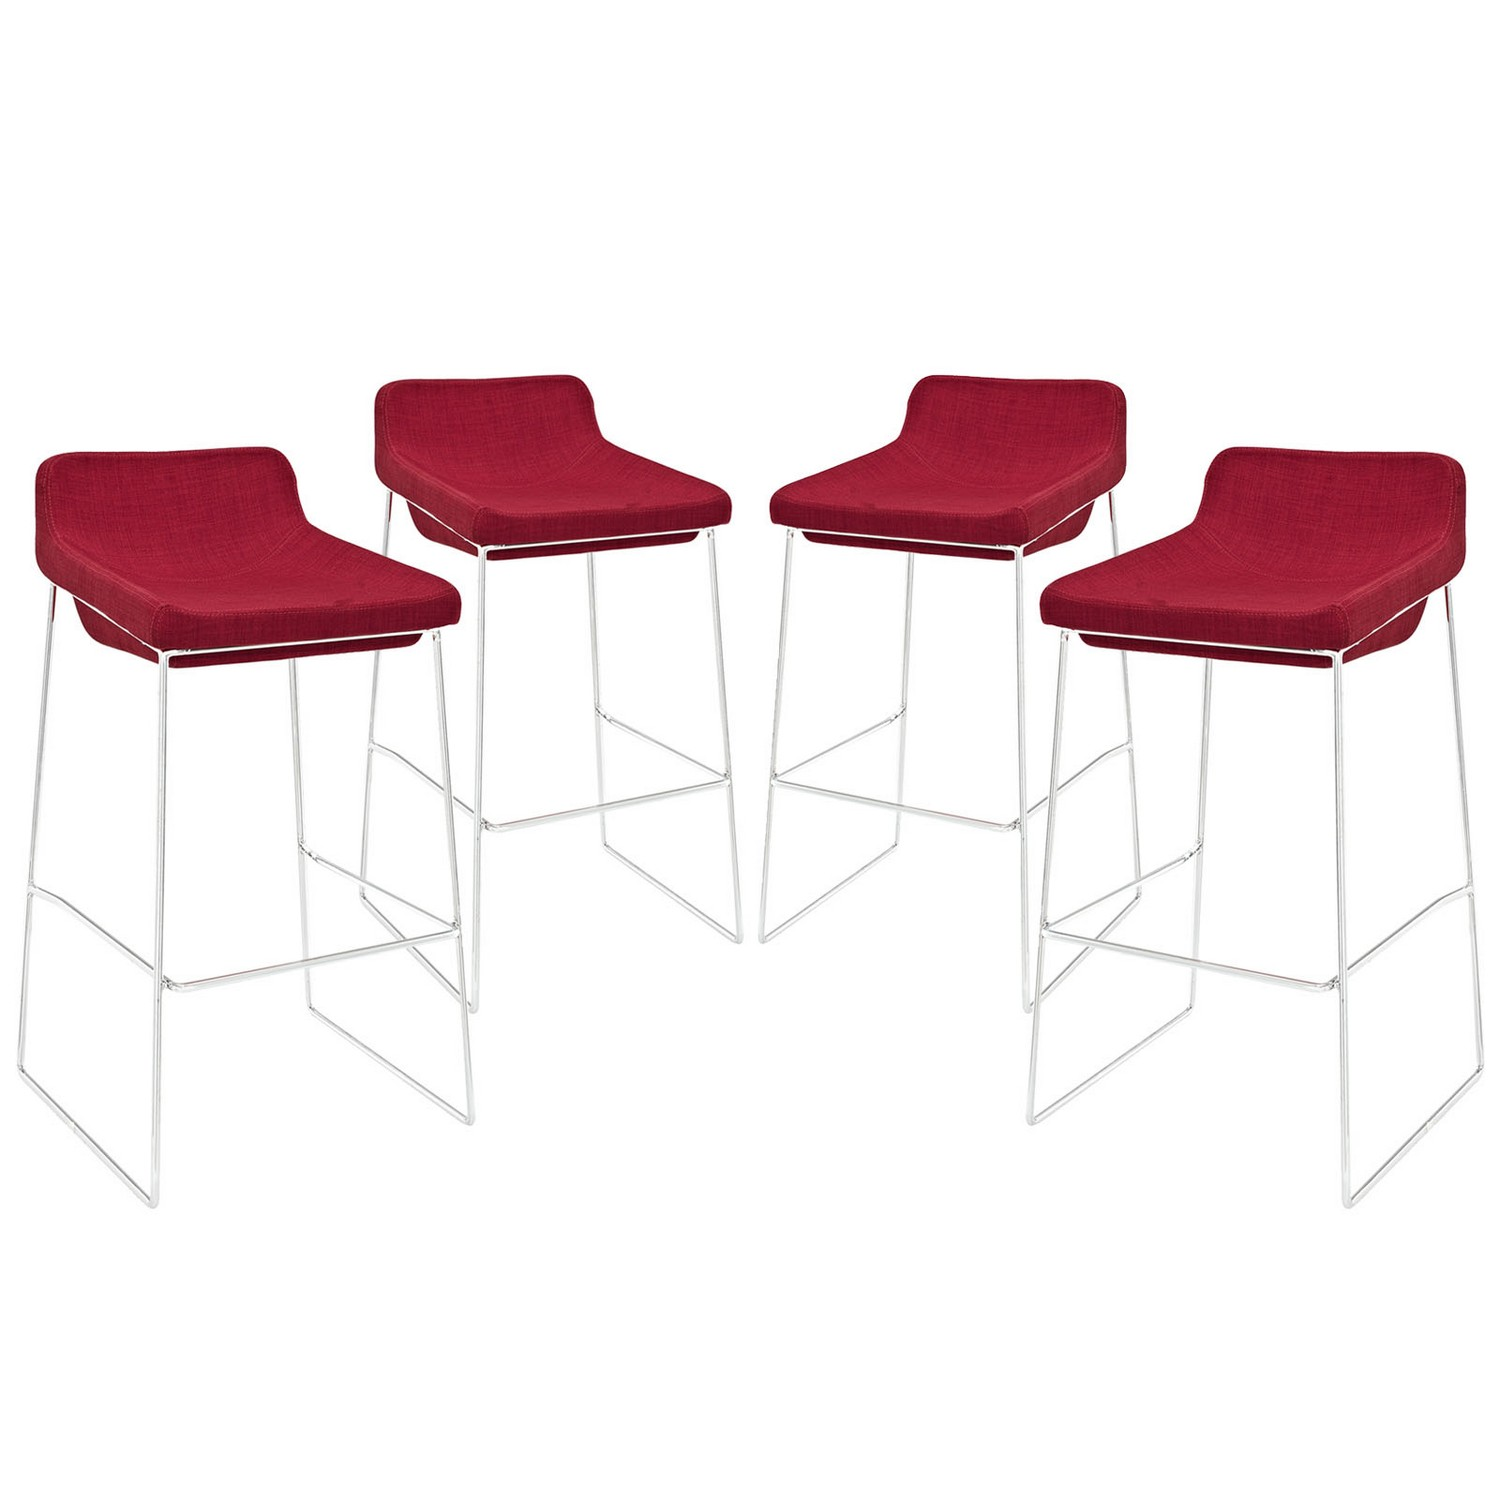 Modway Garner Bar Stool Set of 4 - Red